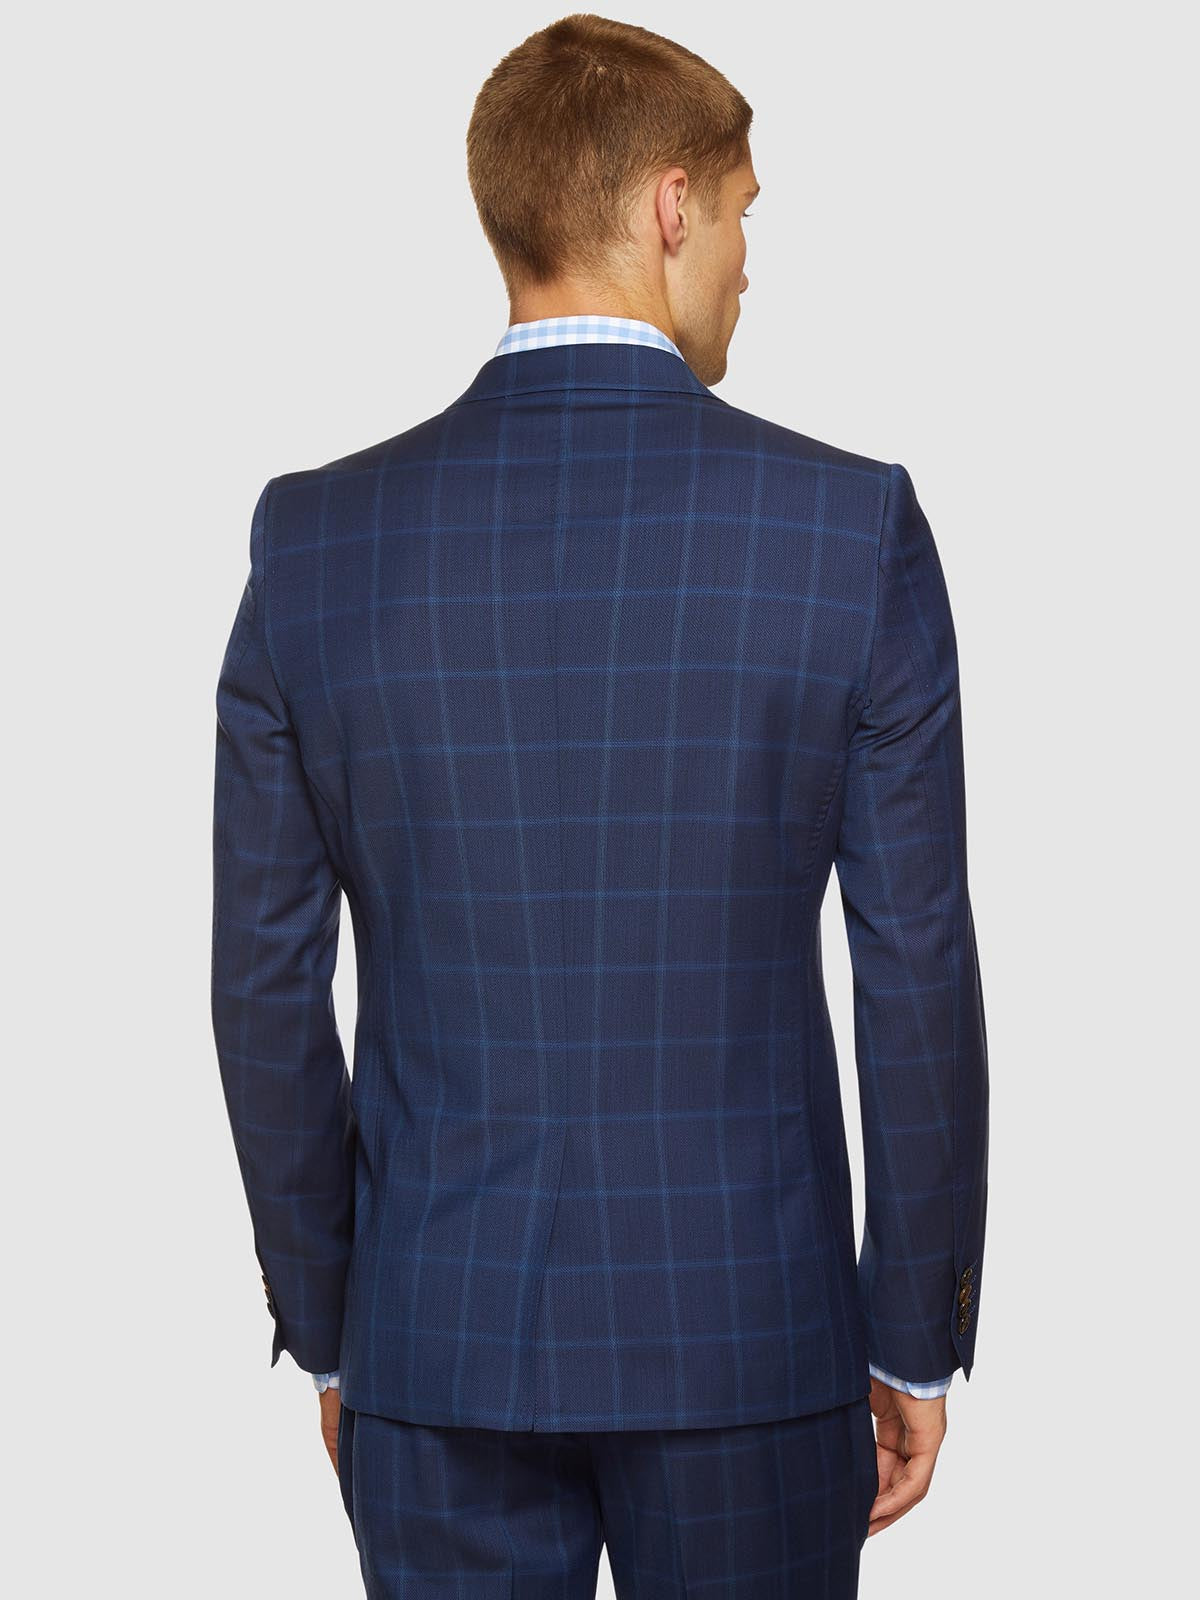 AUDEN WOOL SUIT CHECKED JACKET